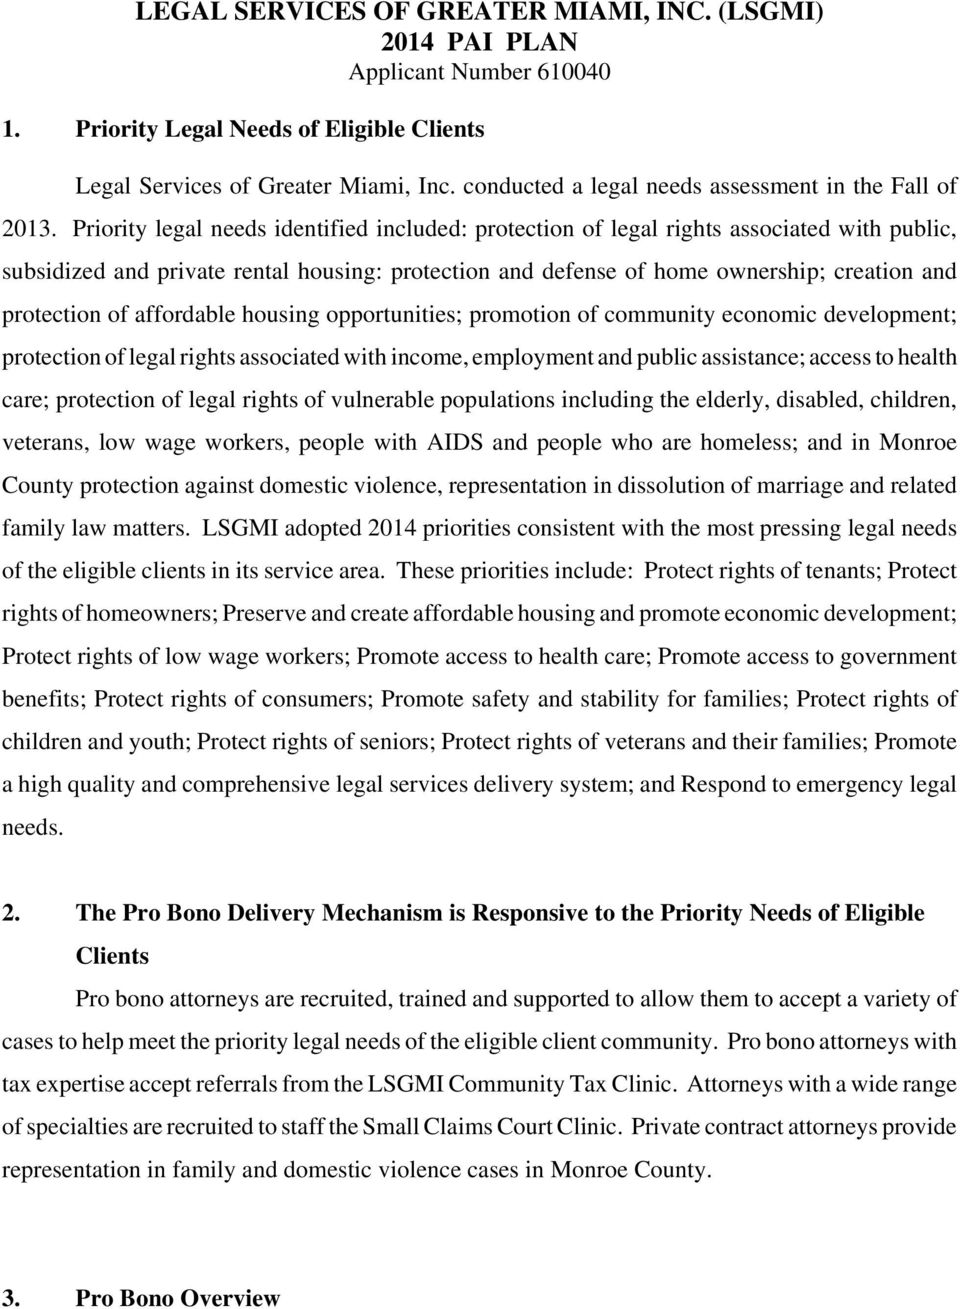 Priority legal needs identified included: protection of legal rights associated with public, subsidized and private rental housing: protection and defense of home ownership; creation and protection